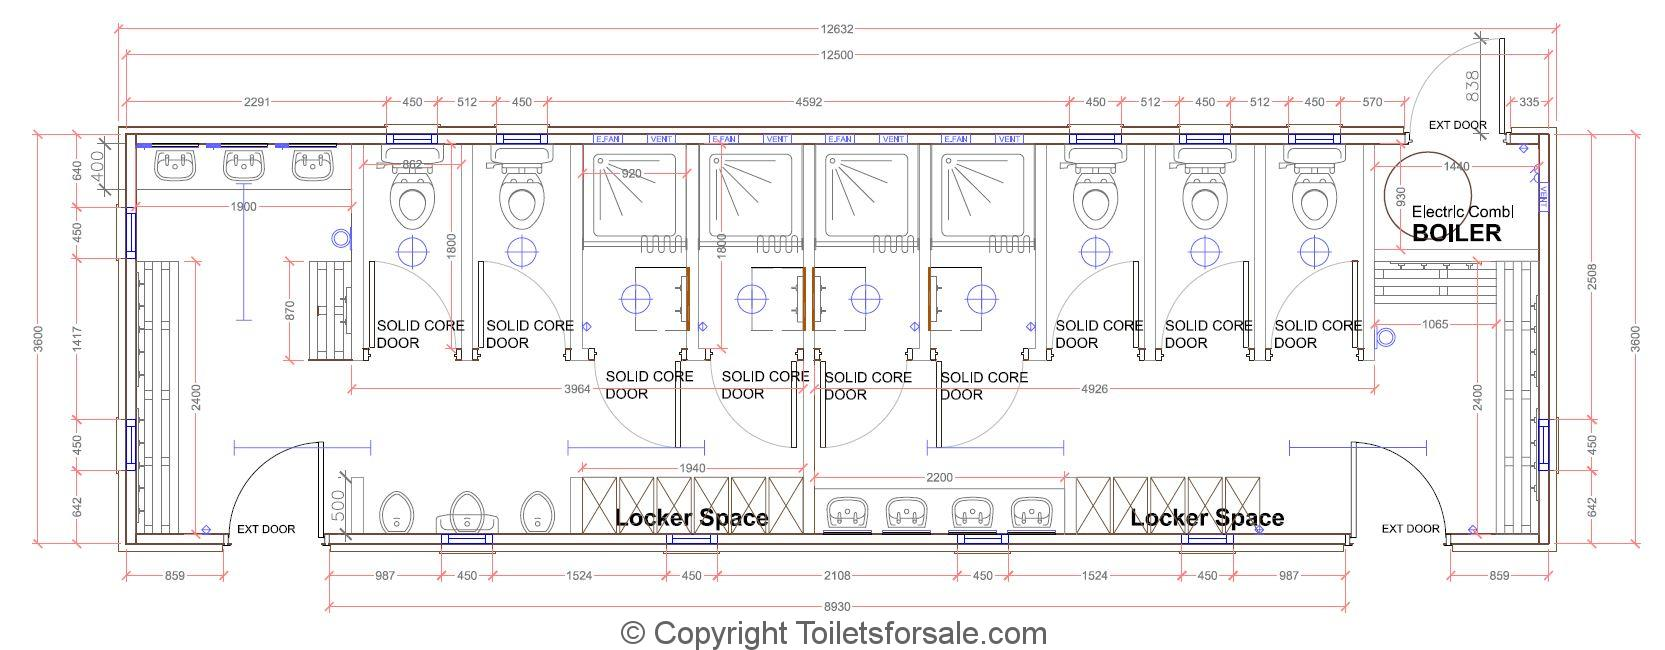 Locker room floor plan dimensions gurus